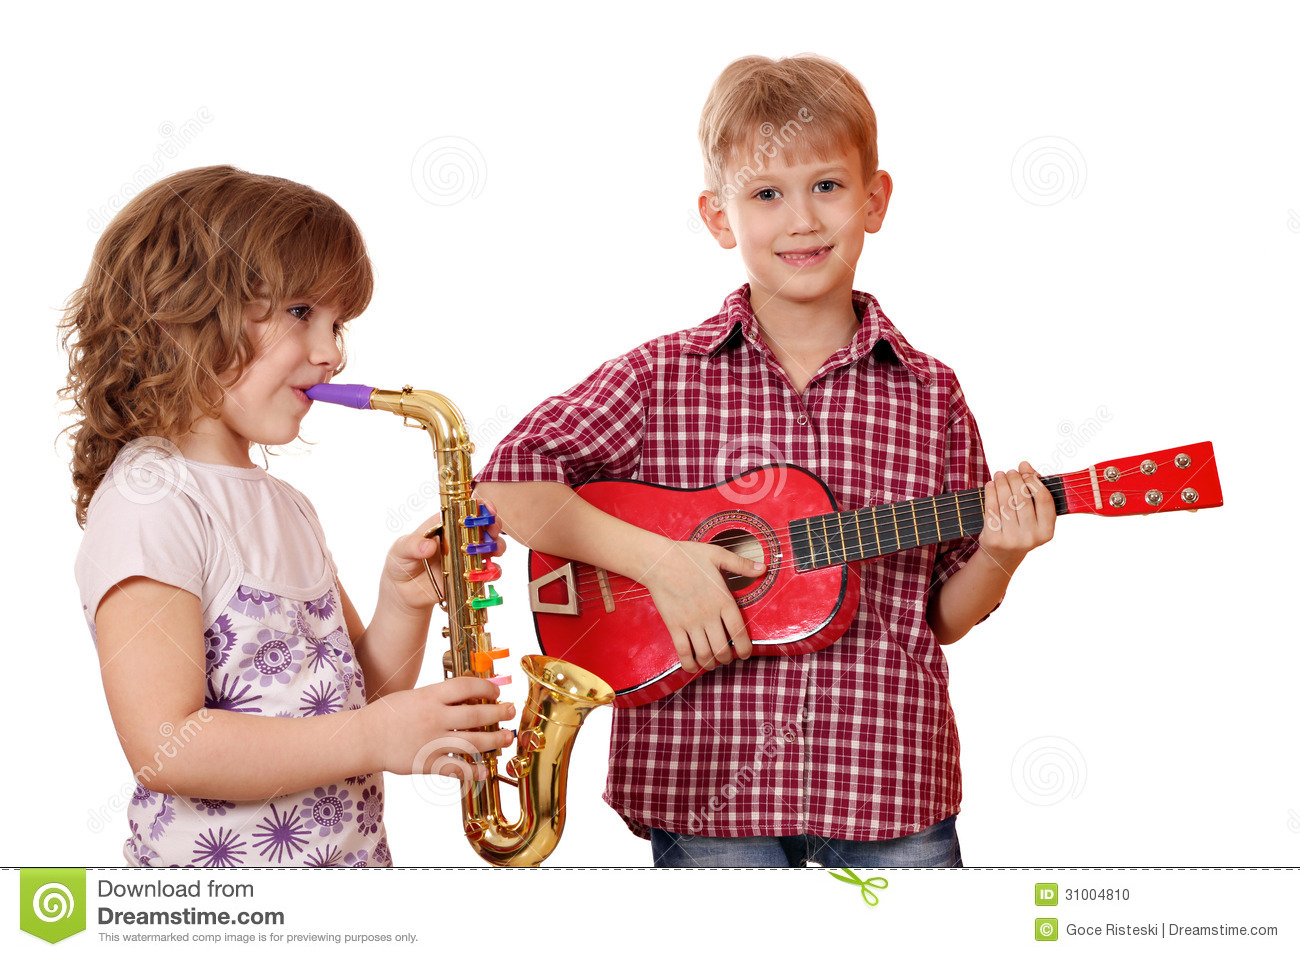 Sax pic giral and boy